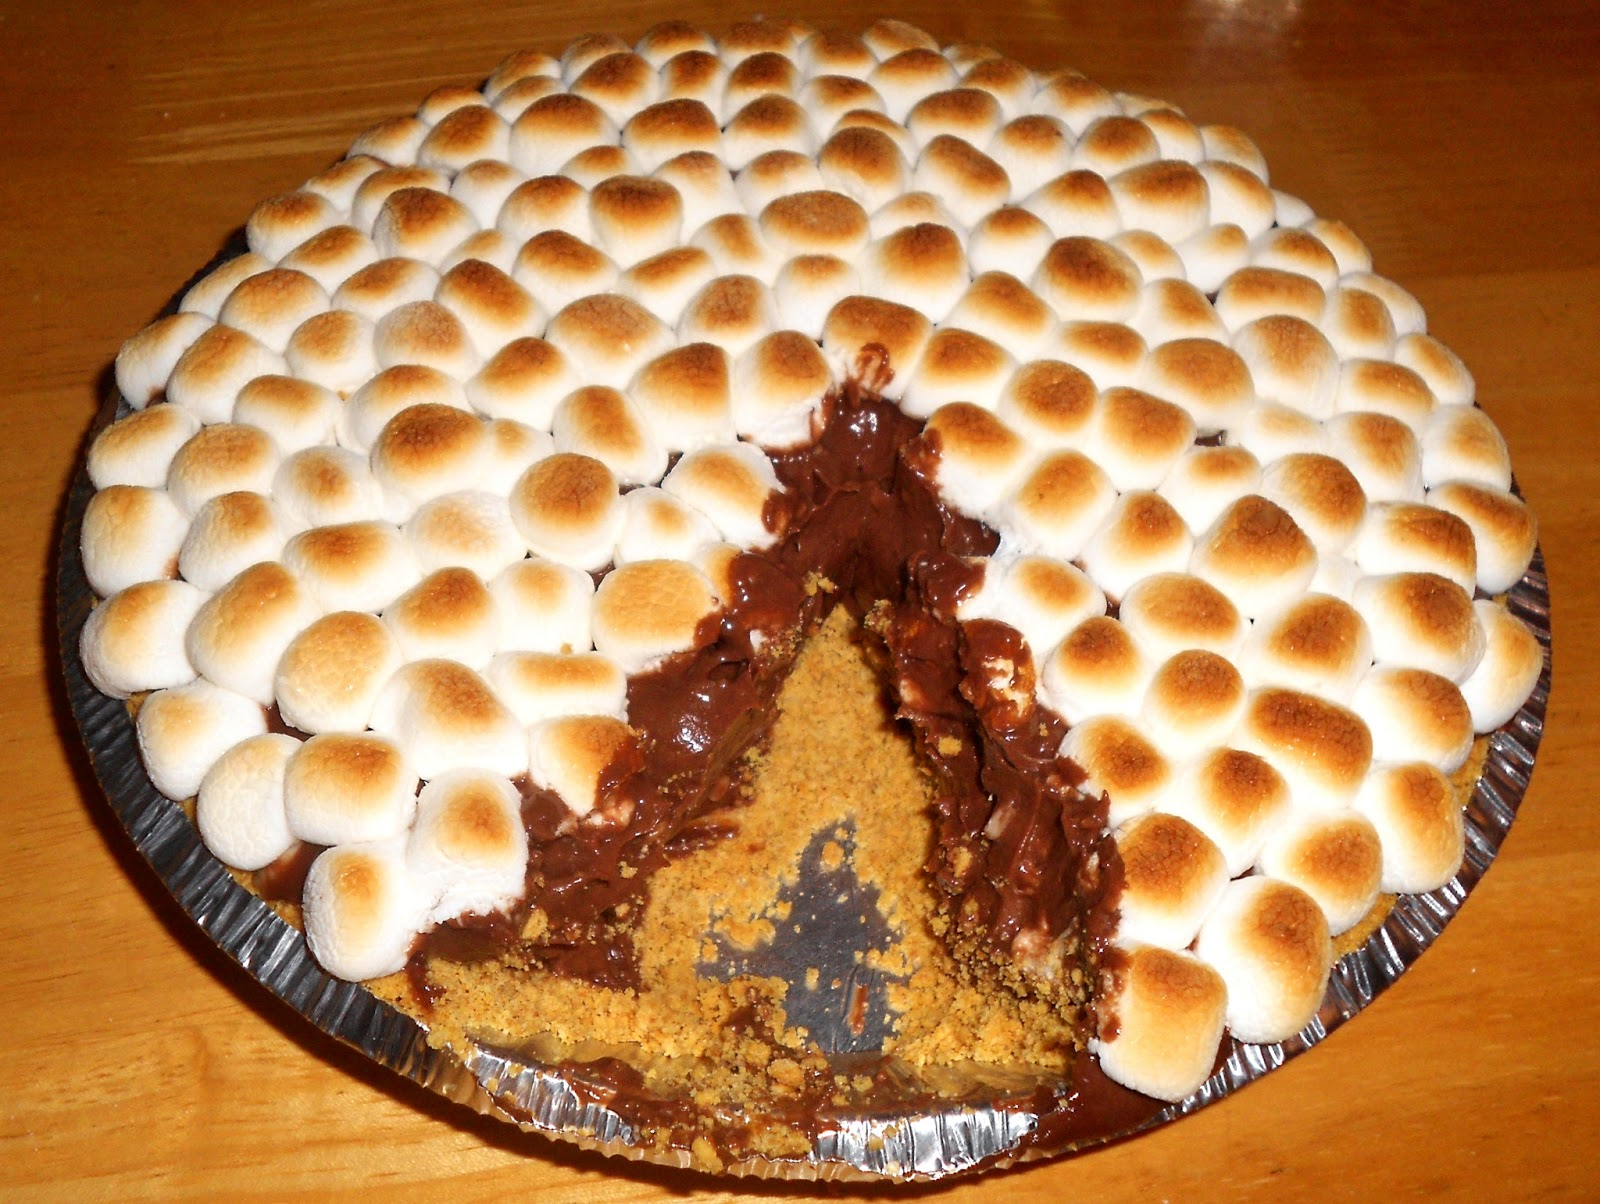 Princesses, Pies, & Preschool Pizzazz: Friday Pie-Day: S'more Pie